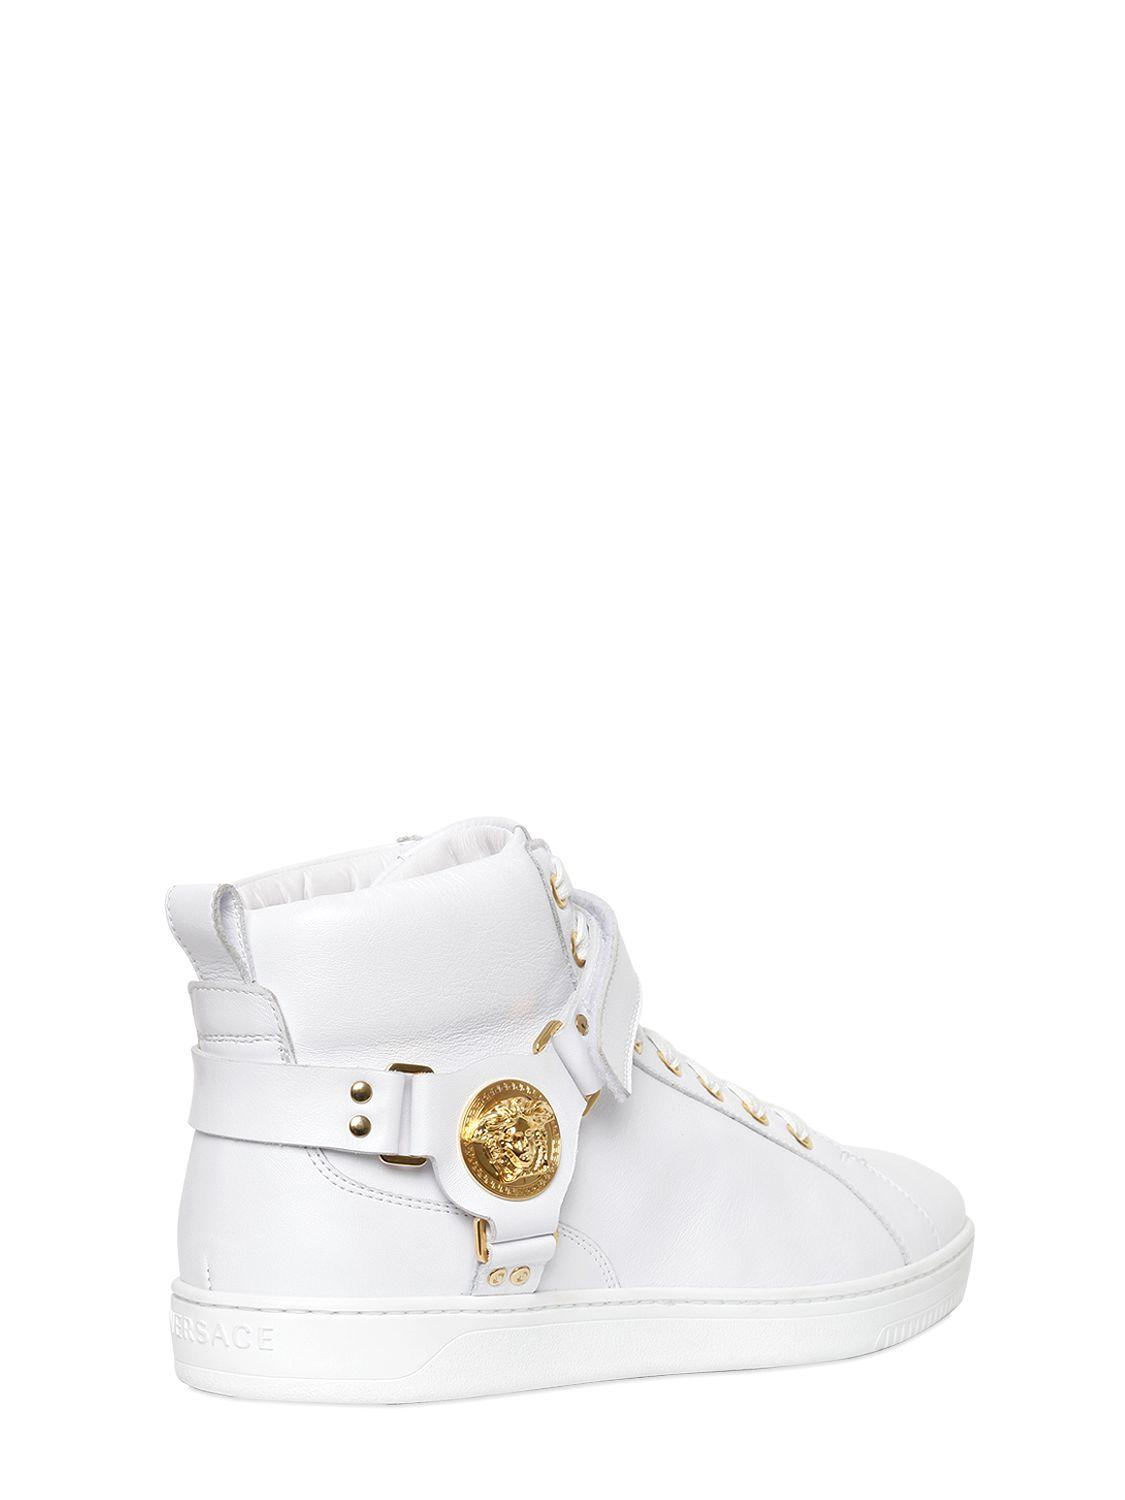 lyst versace medusa smooth leather high top sneakers. Black Bedroom Furniture Sets. Home Design Ideas